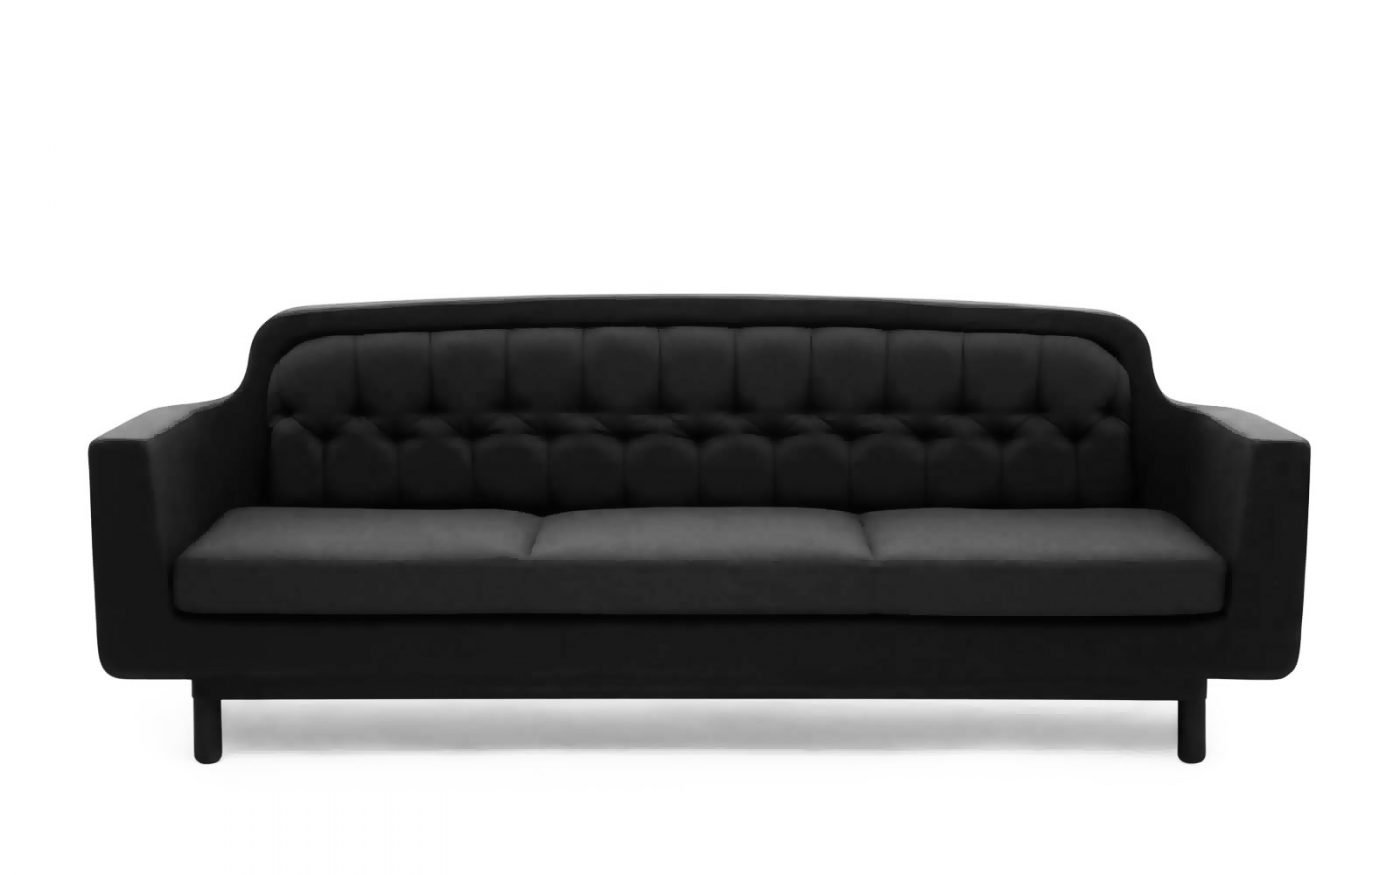 Onkel Sofa 3 Seater leather normann copenhagen